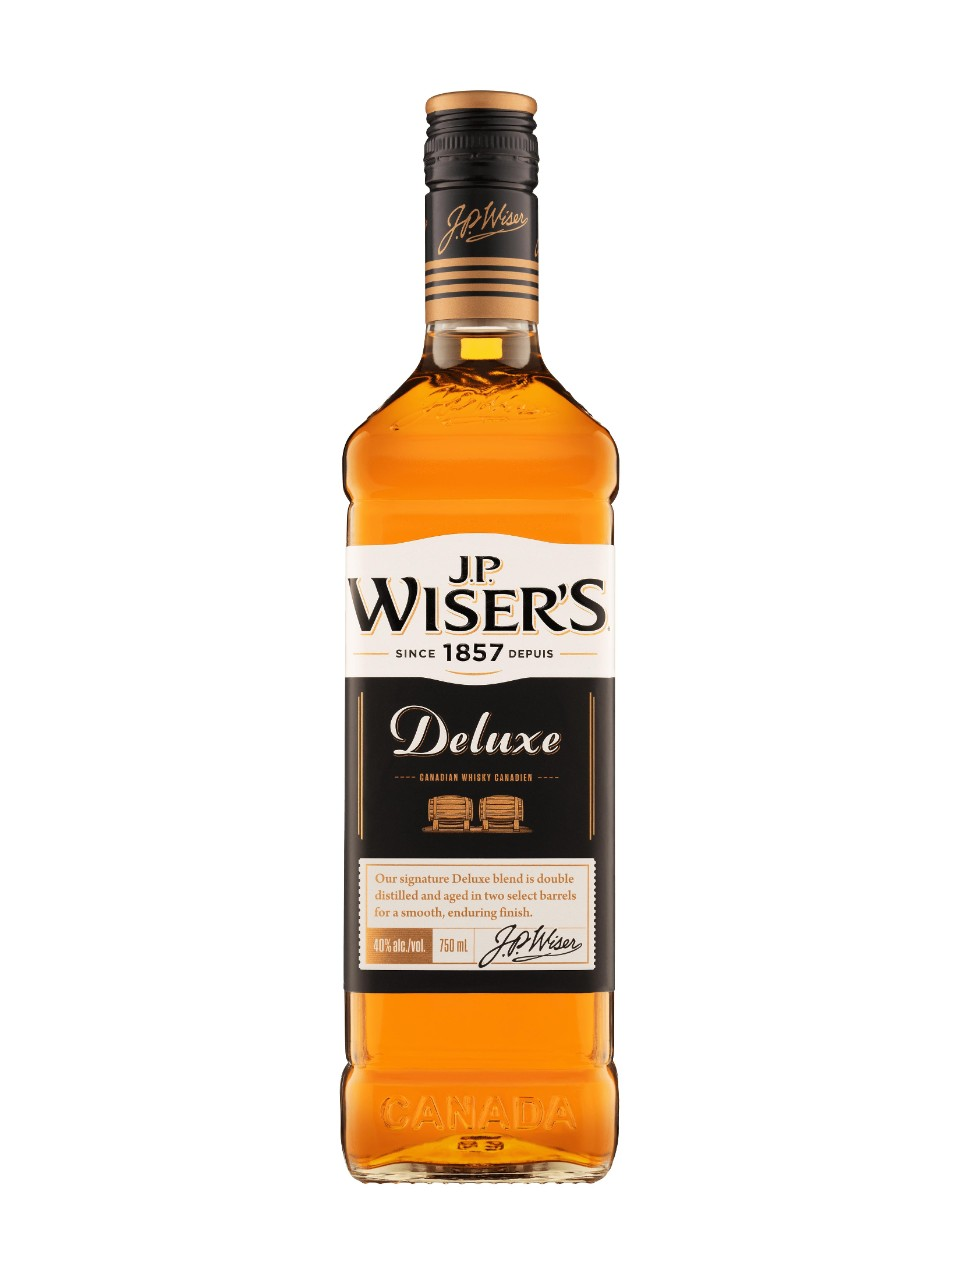 J.P. Wiser's Deluxe Whisky from LCBO